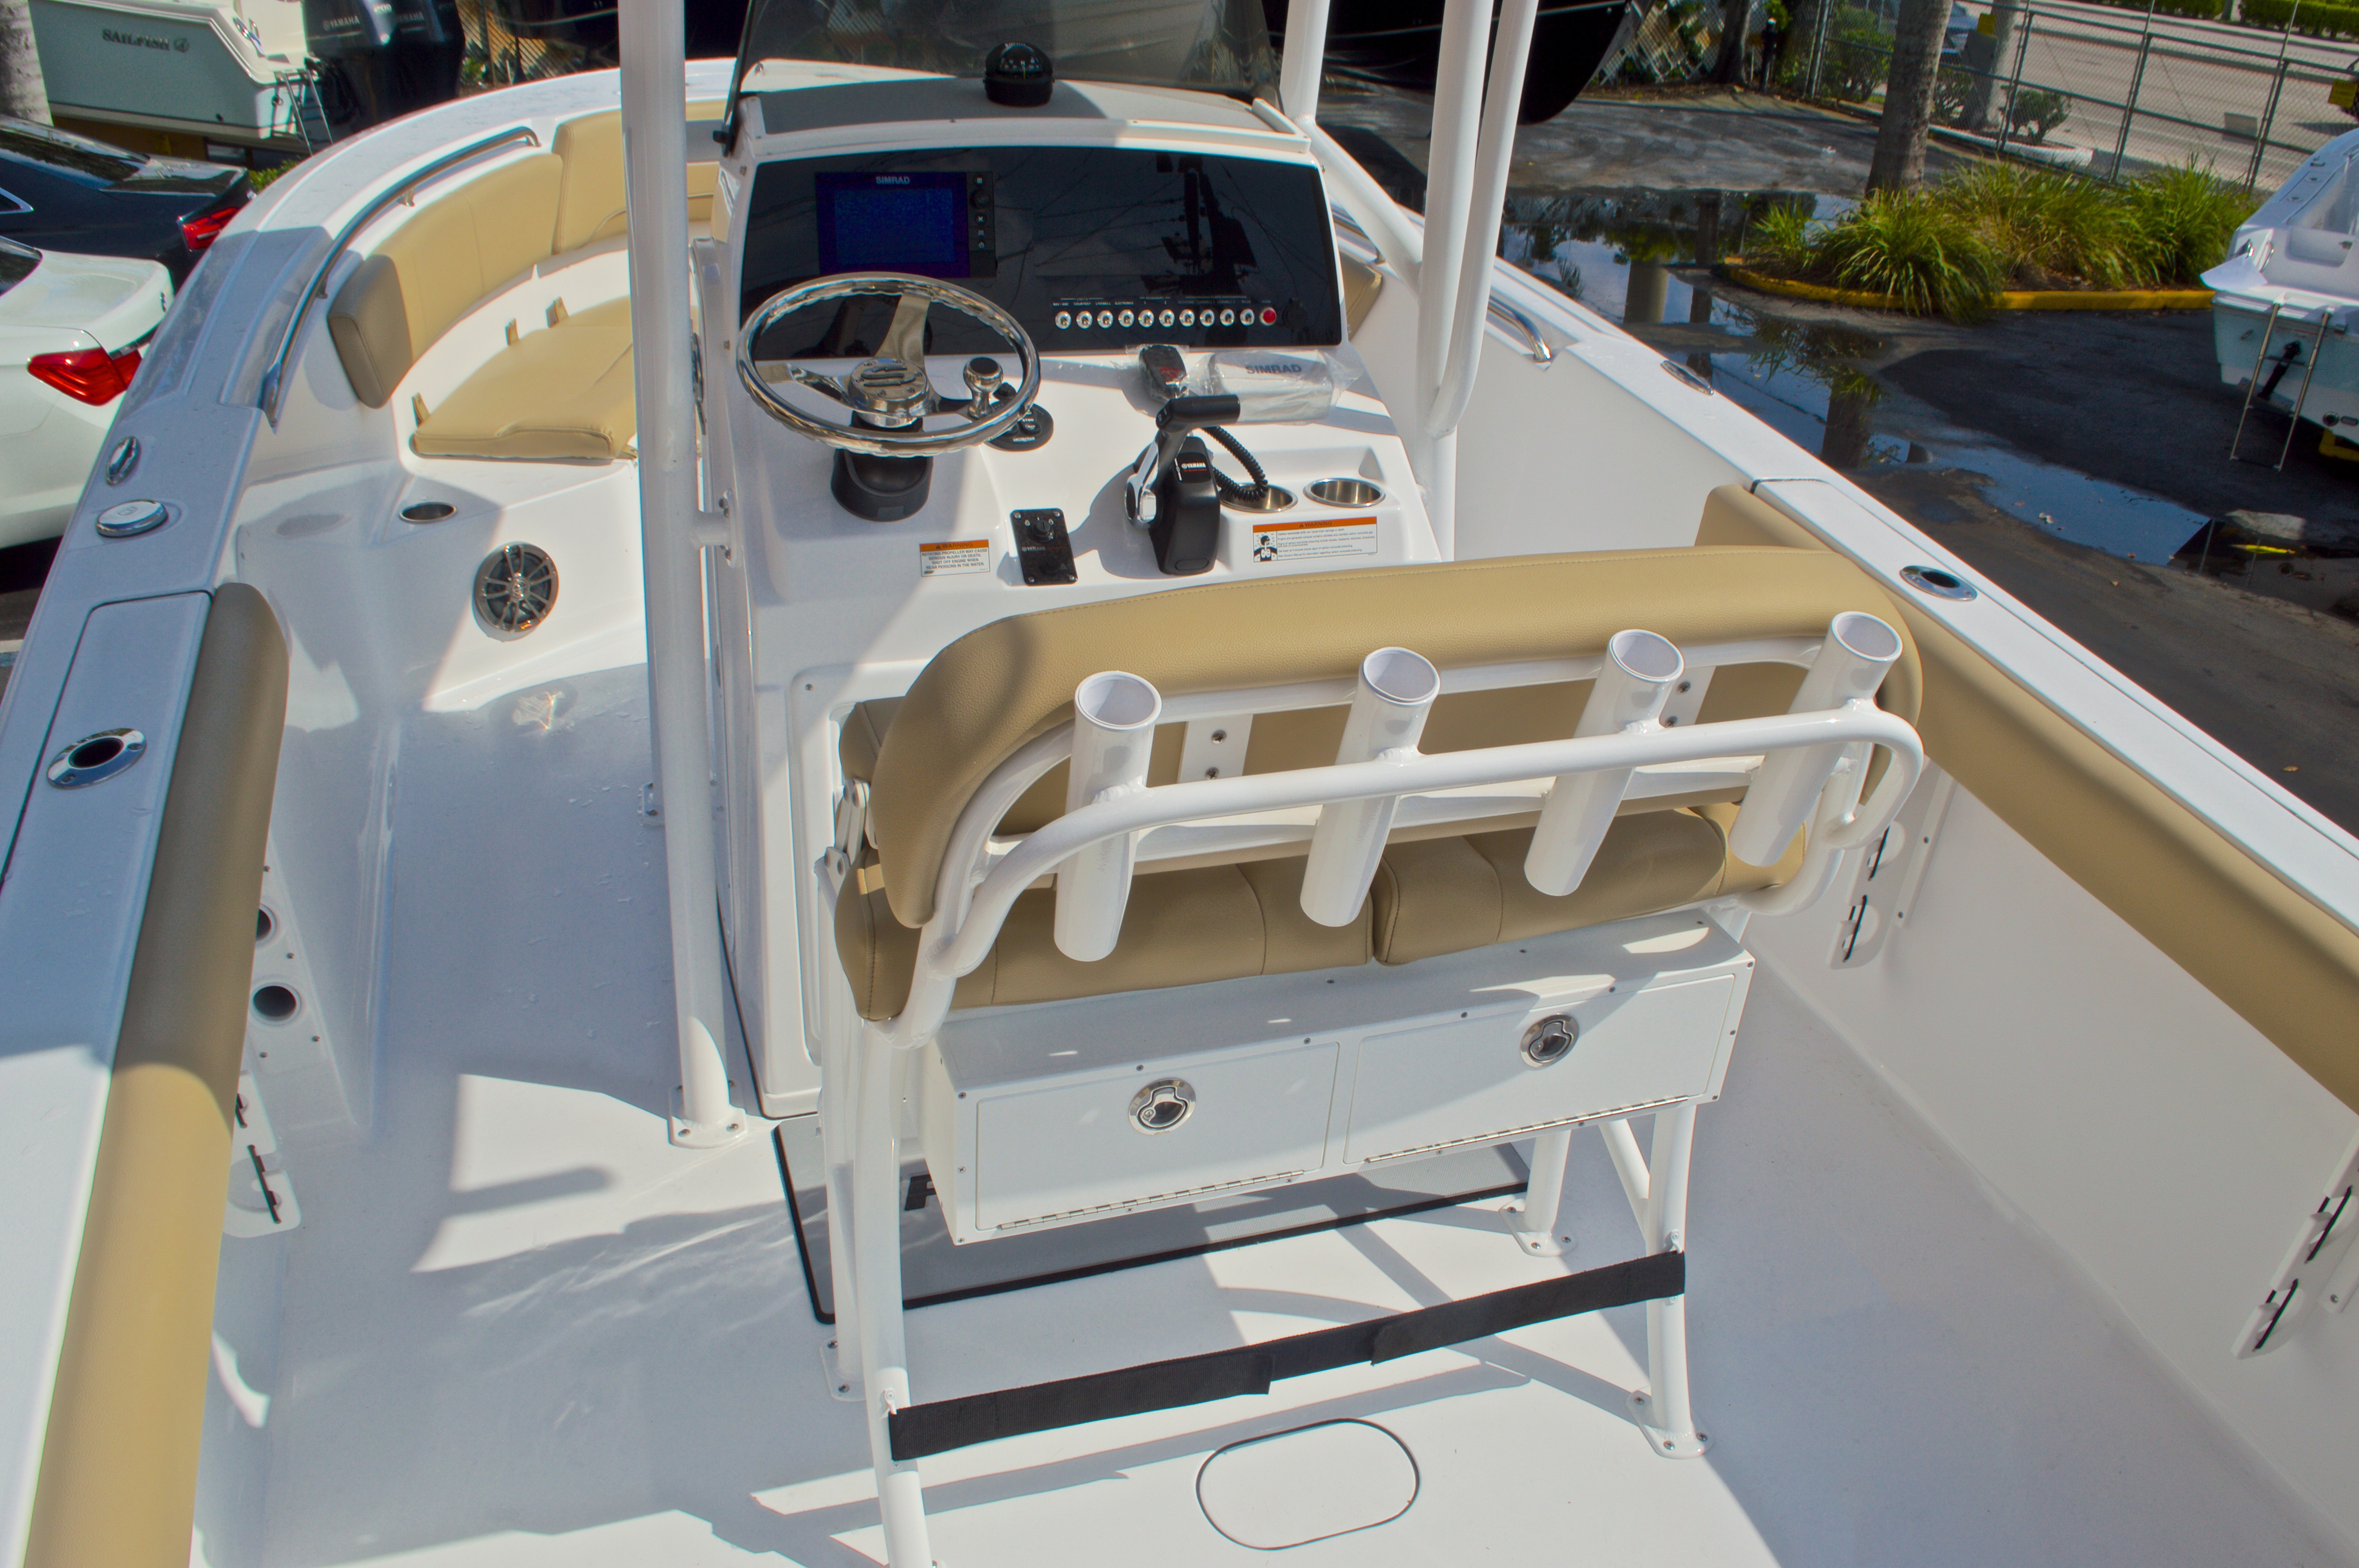 Thumbnail 10 for New 2016 Sportsman Heritage 231 Center Console boat for sale in Vero Beach, FL